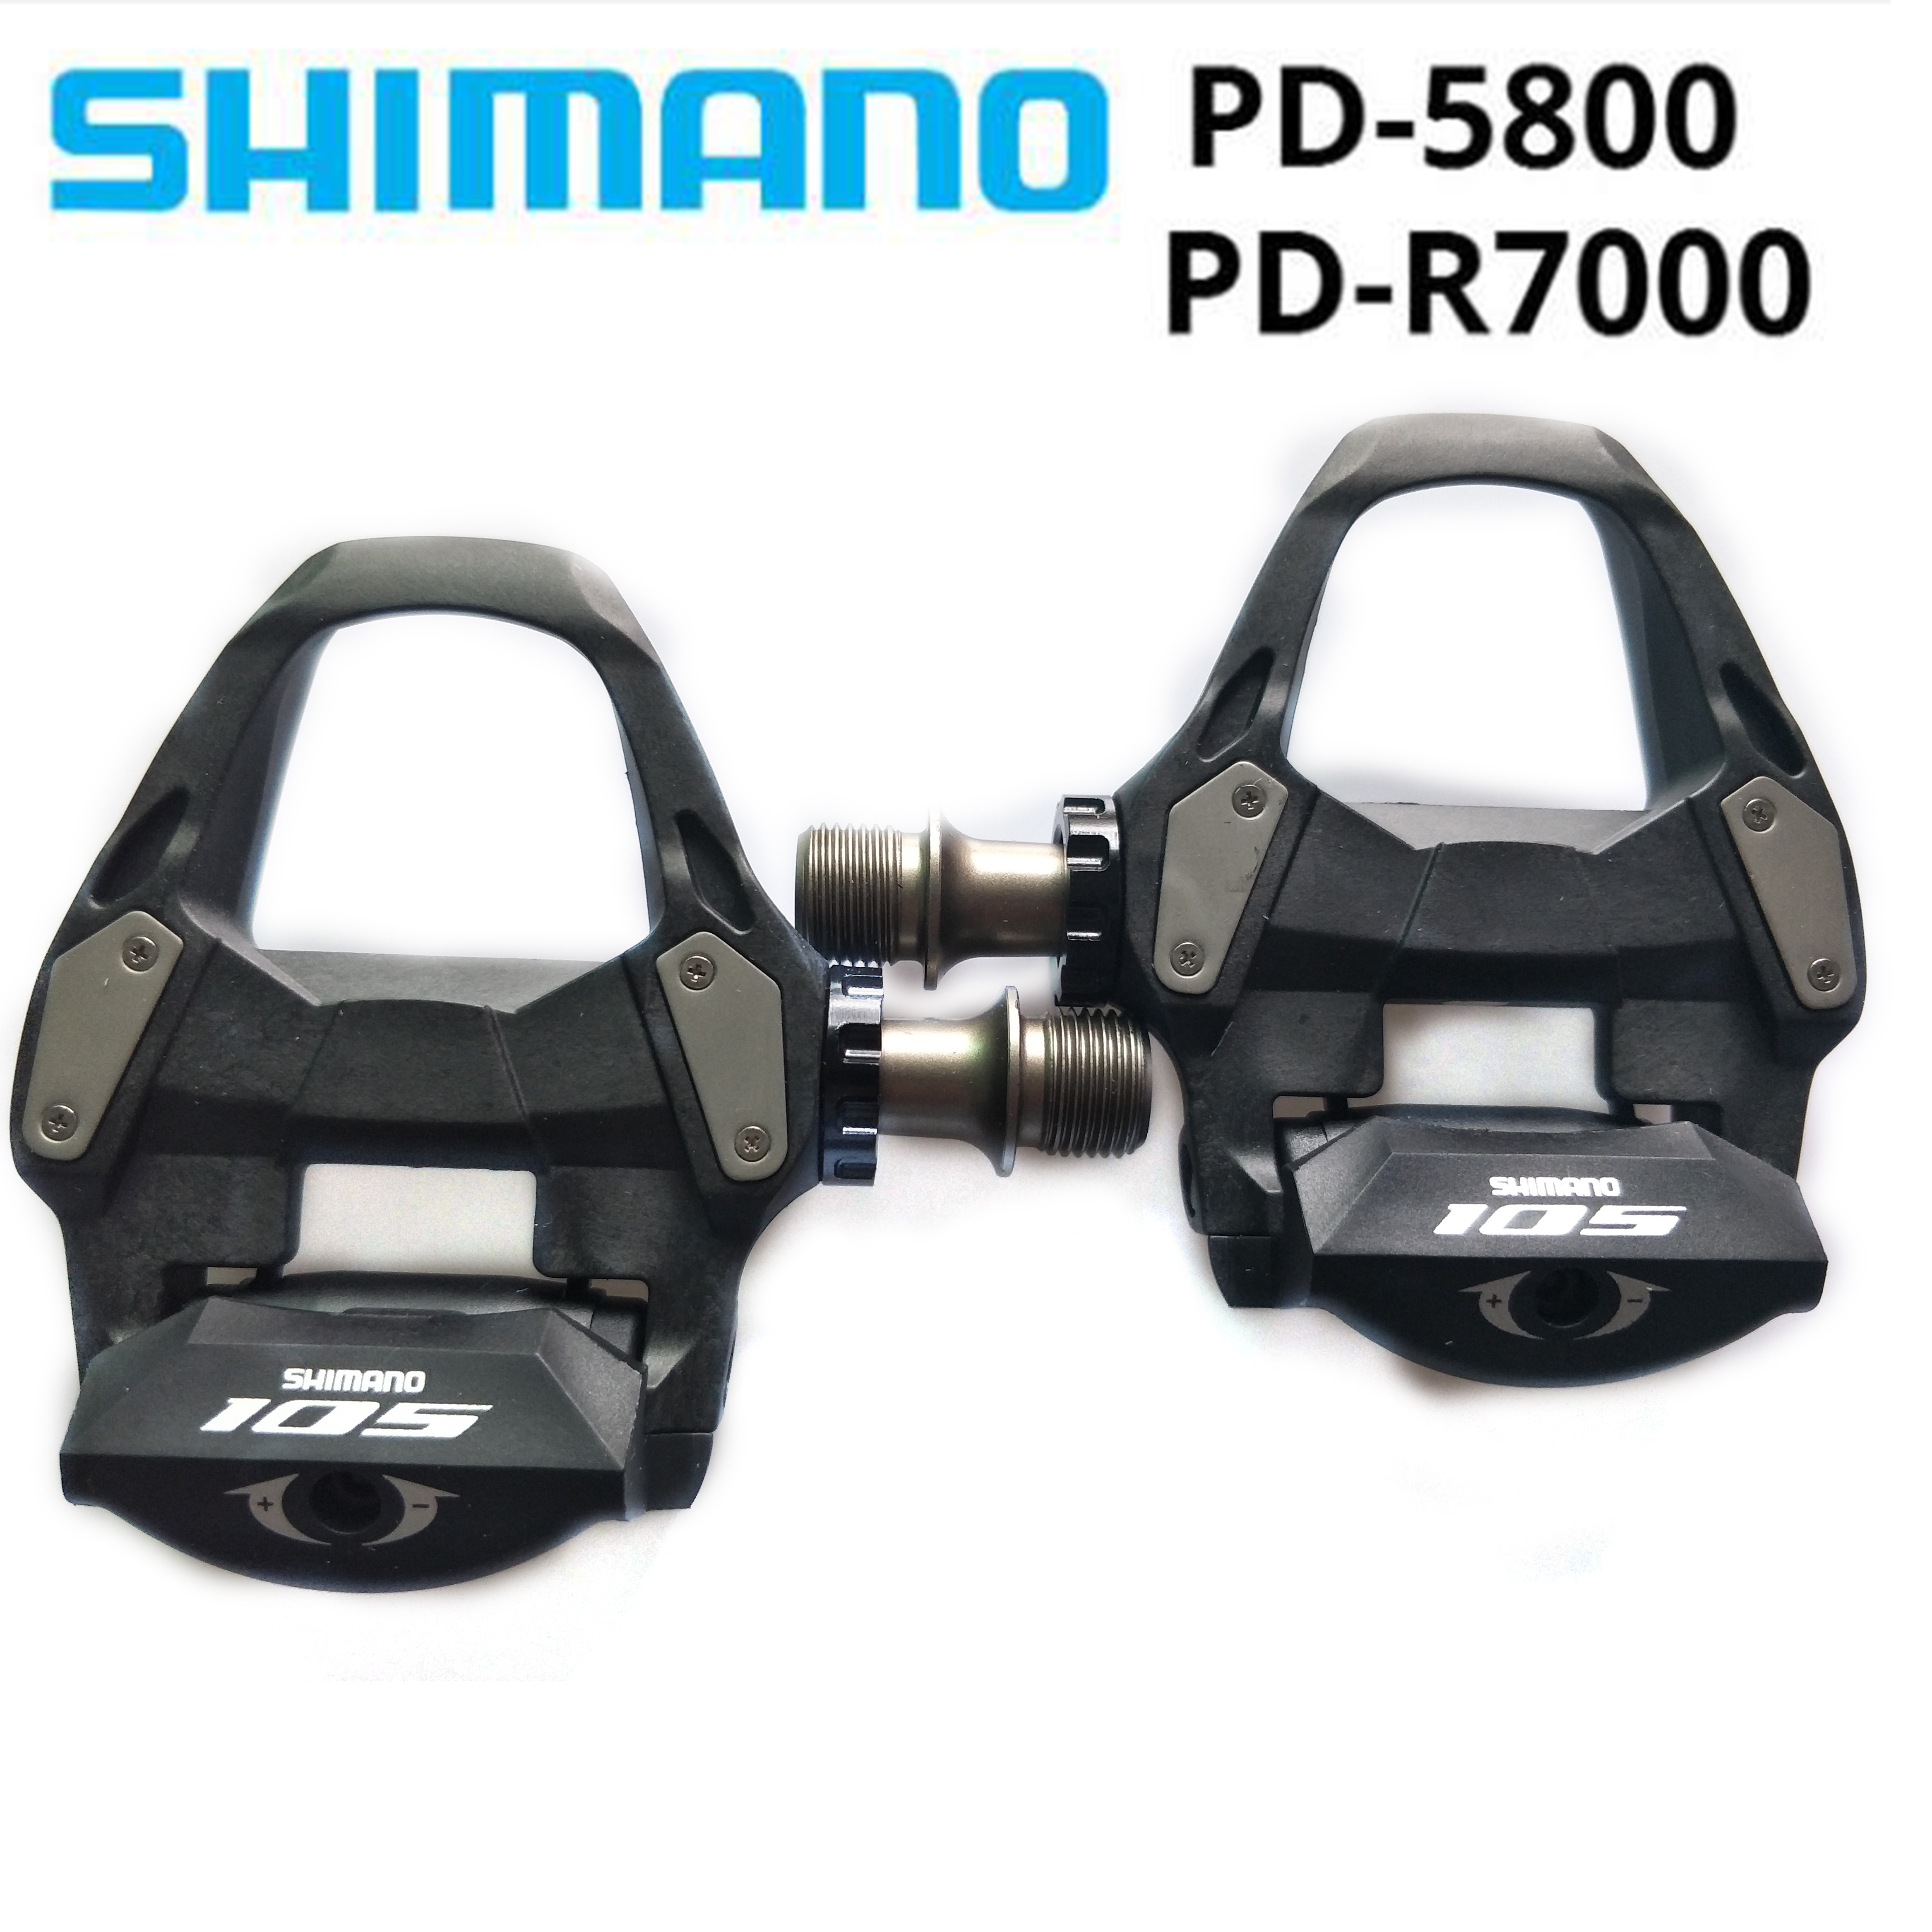 2019 new SHIMANO 105 PD5800 R7000 Self Locking SPD Pedals with SH11 Cleats Bicycle Racing Road